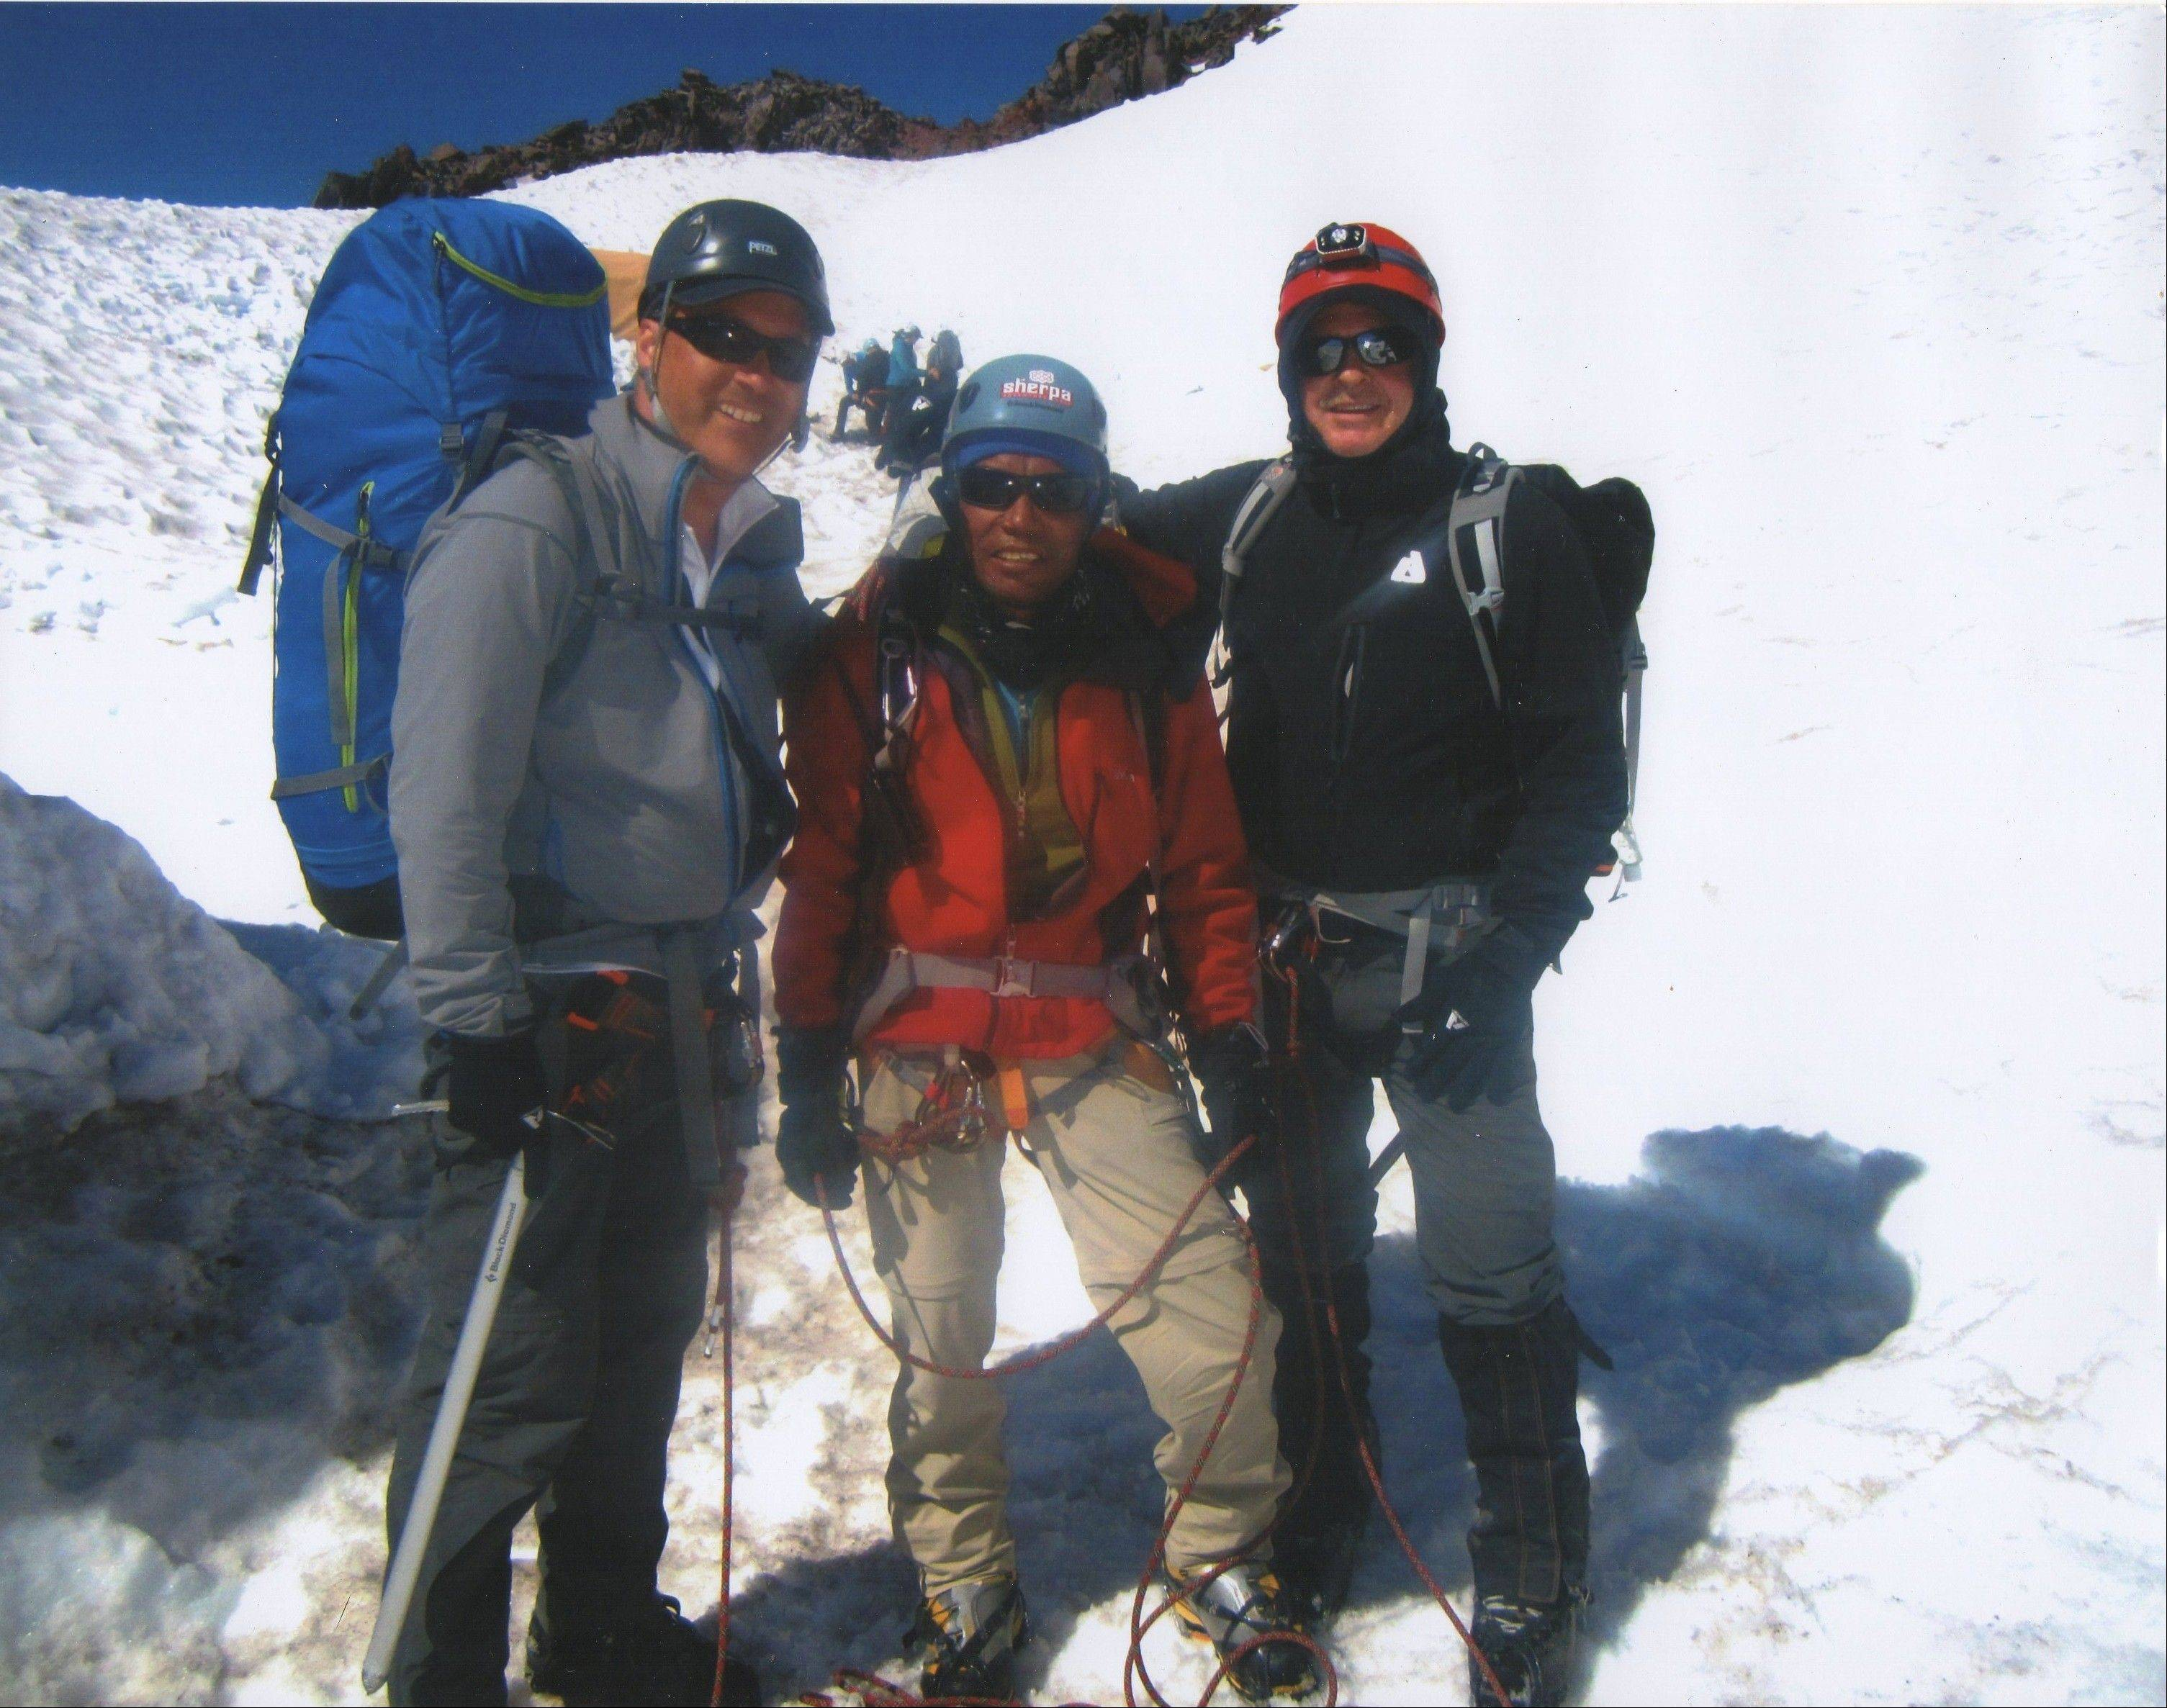 Thomas Beckworth, from left, Lakpa Rita Sherpa, and Jack Teboda